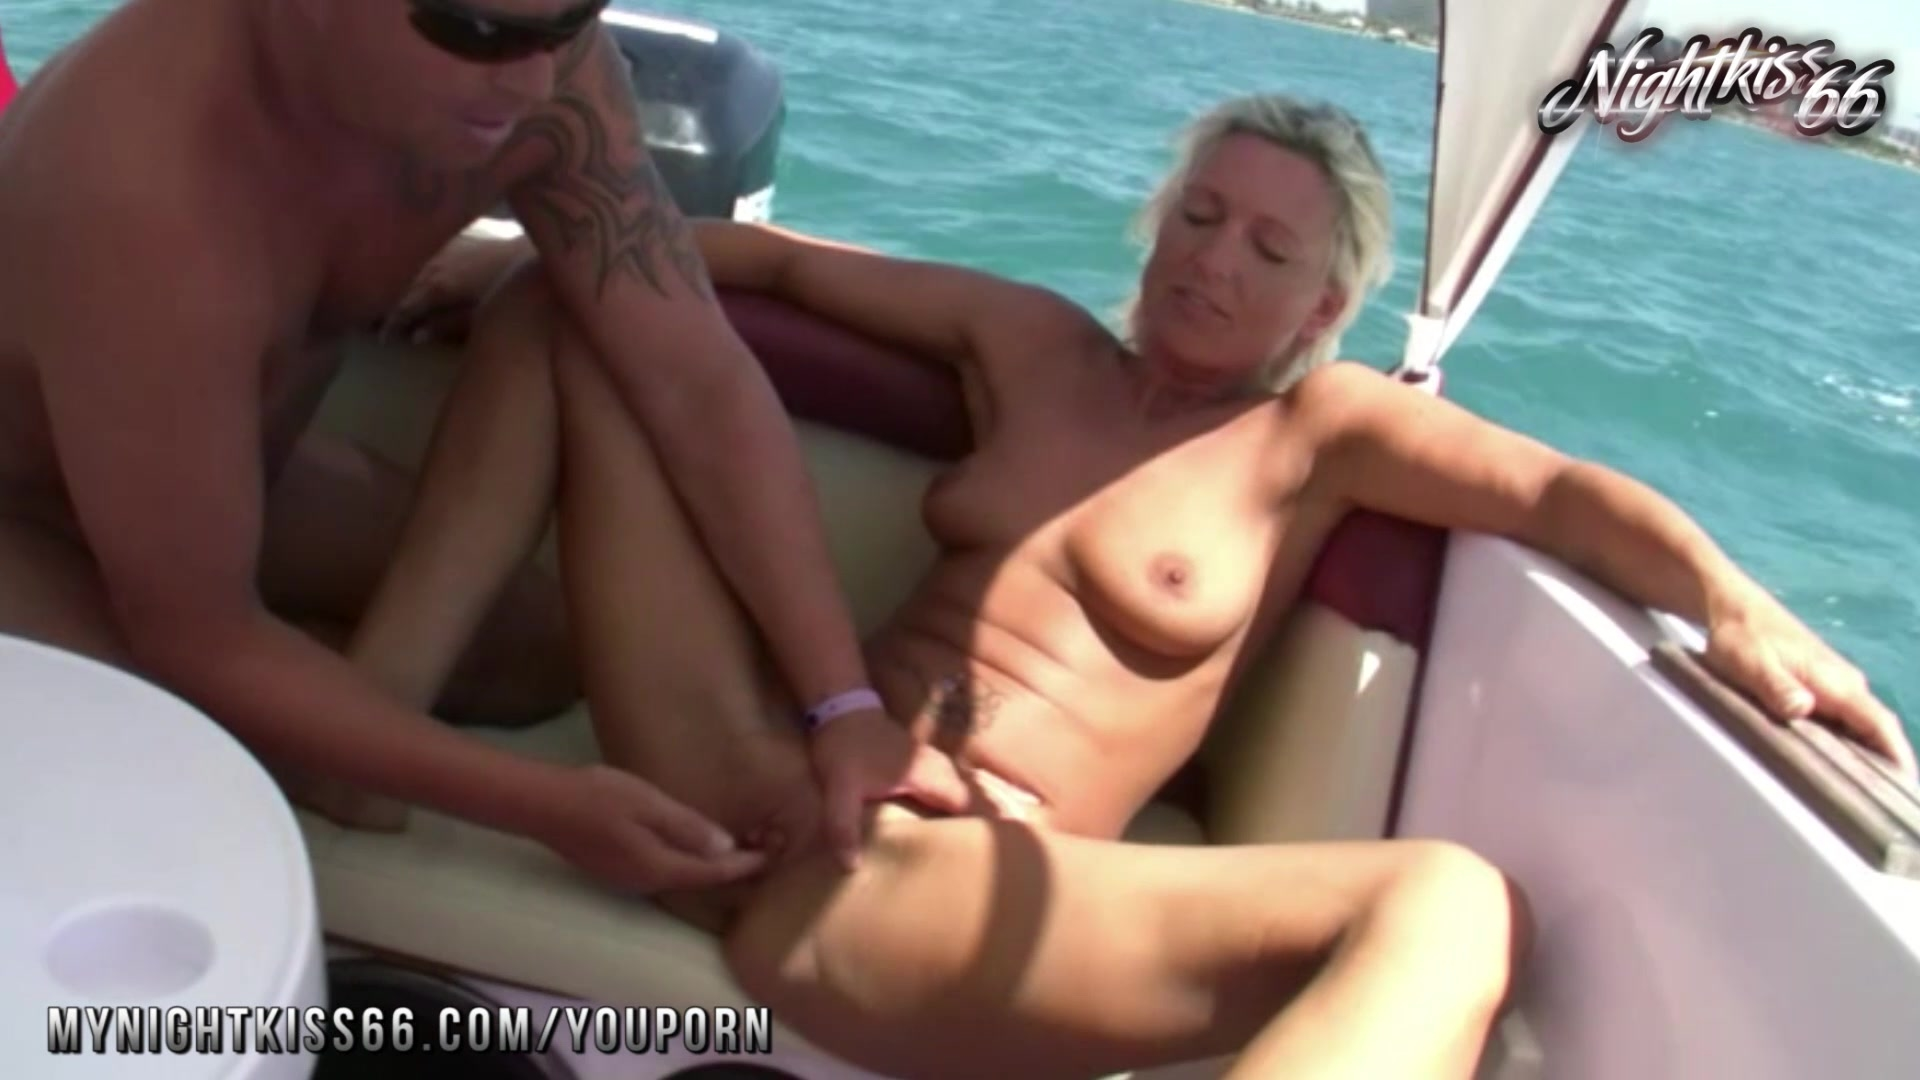 brilliant erin ellington nude pussy and big tits will not pass! Absurdity